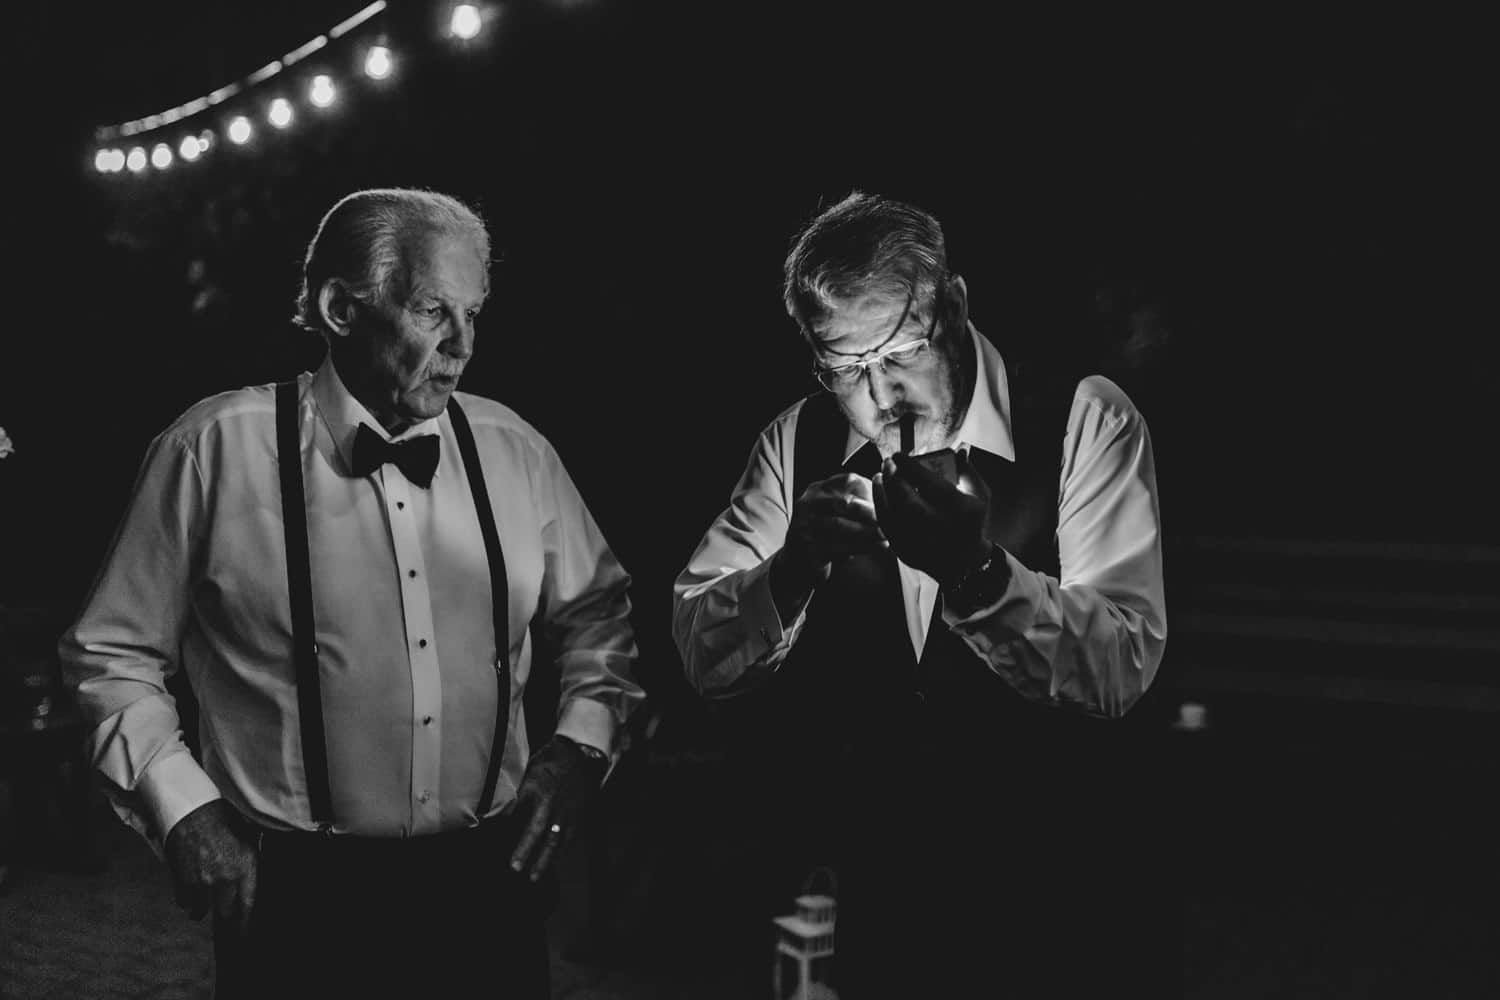 bride's father lights up a cigar outside - strathmere summer wedding